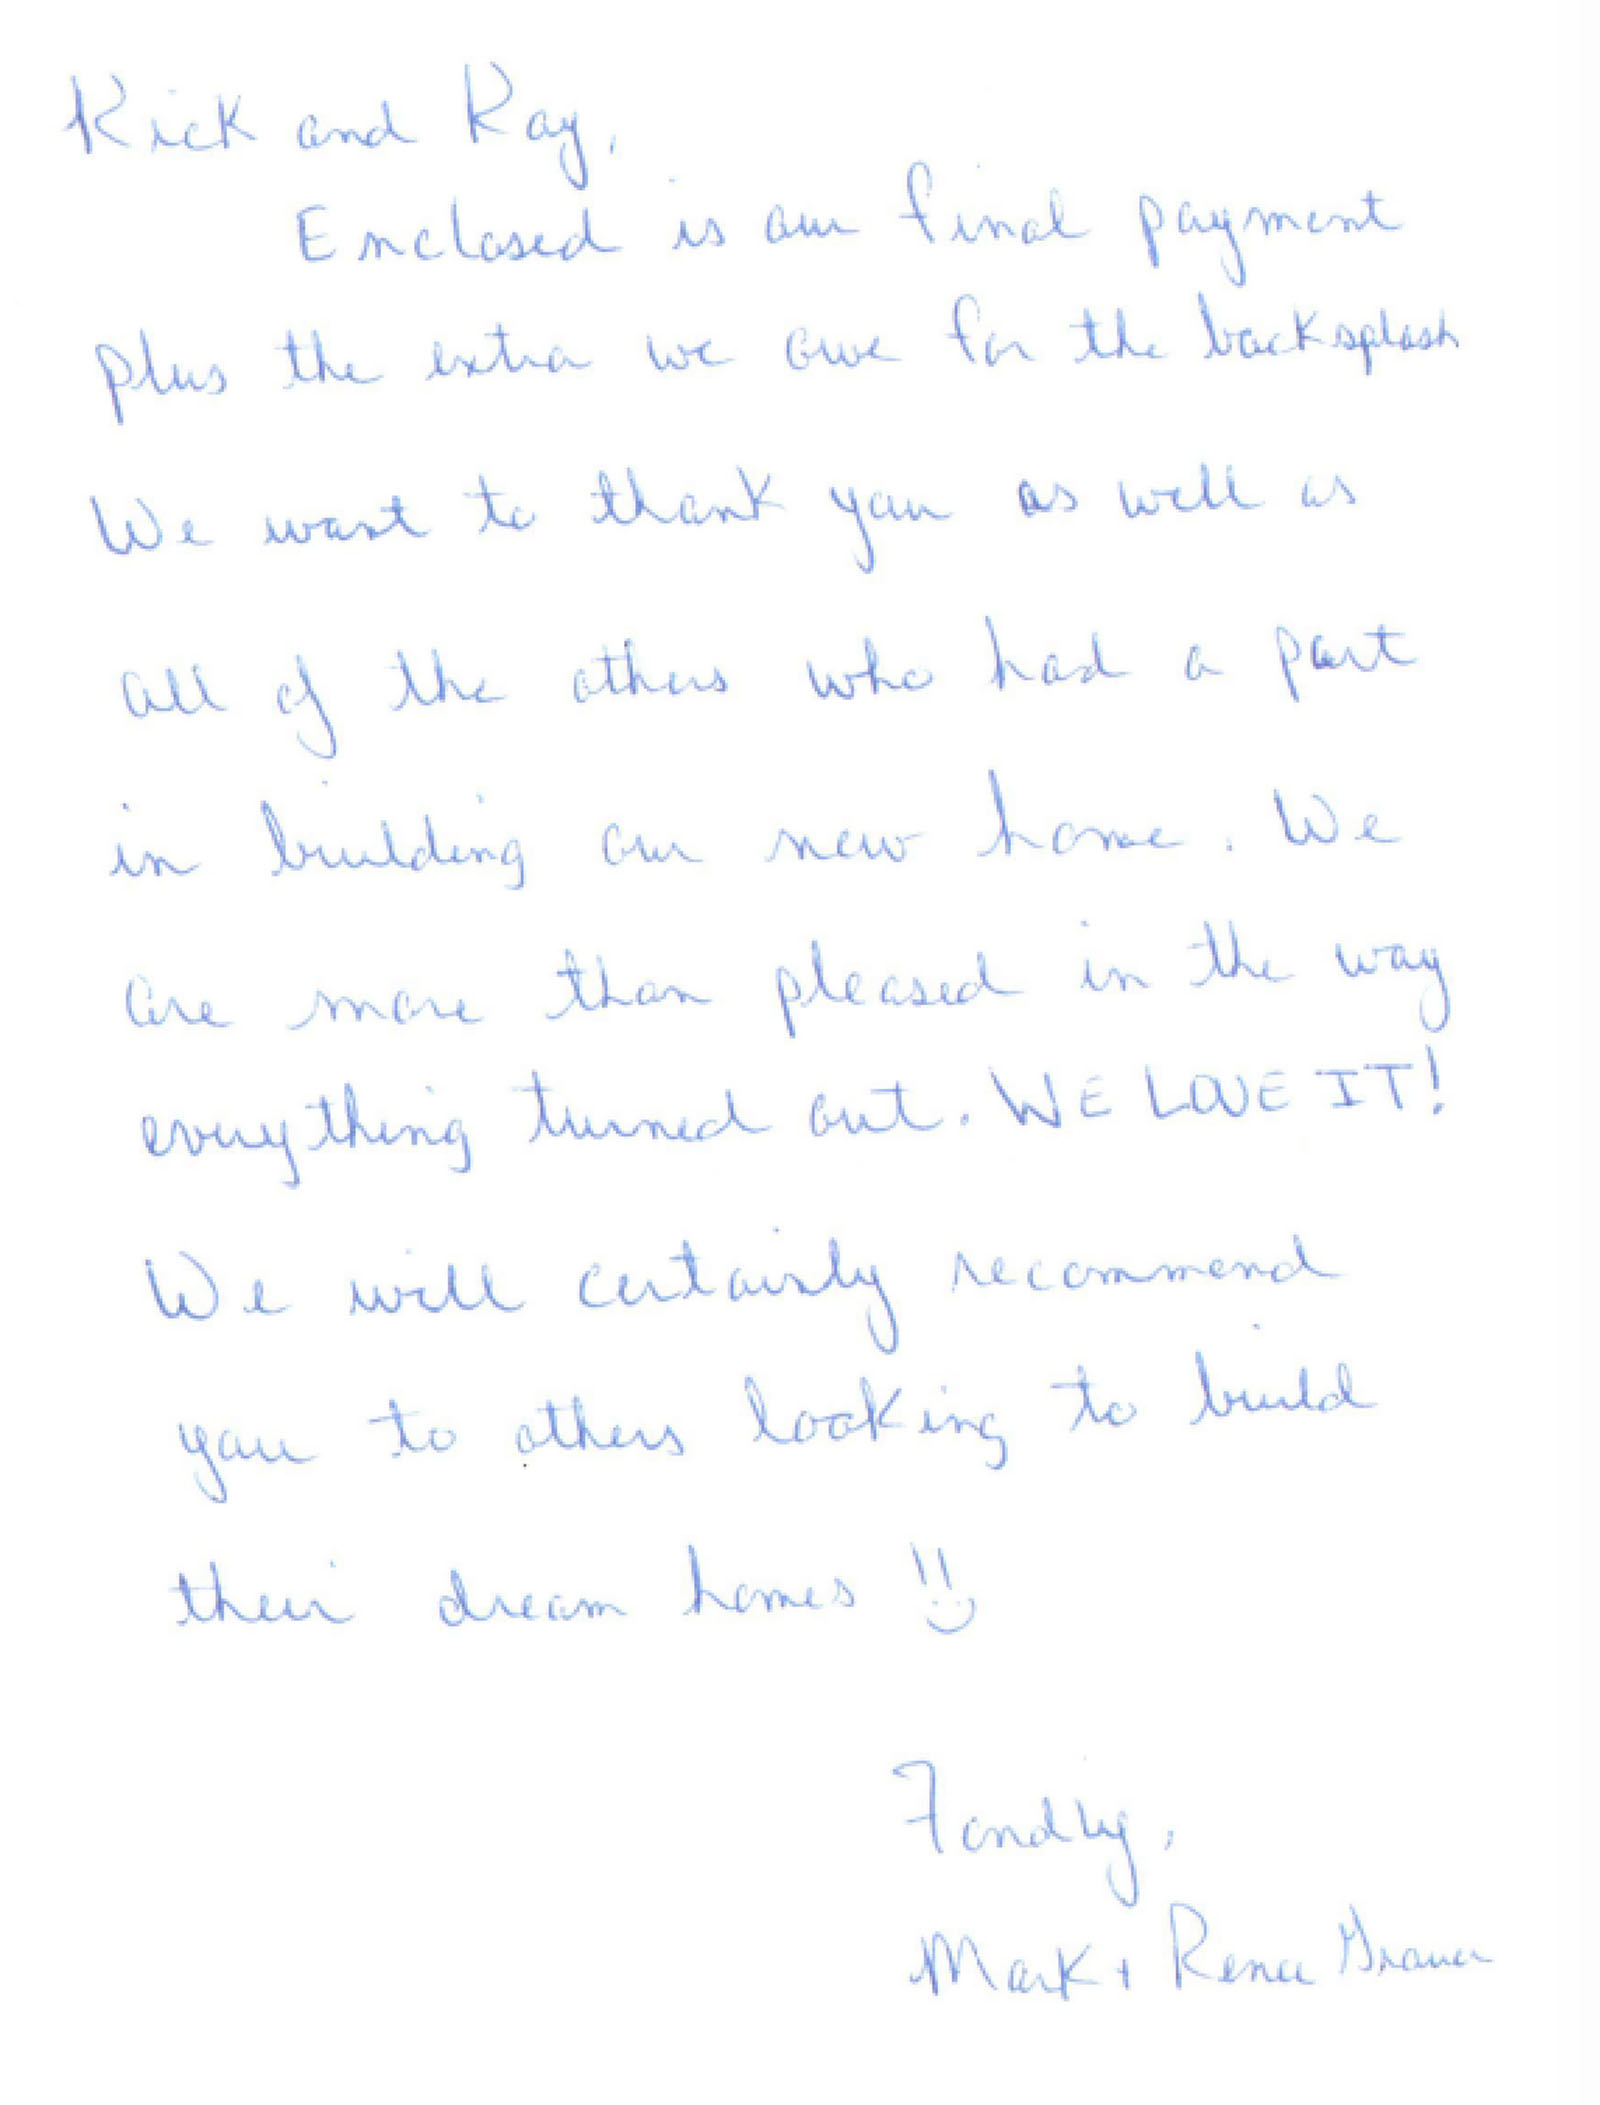 Written testimonial from one of H&H Builders' previous clients for whom we built a new home